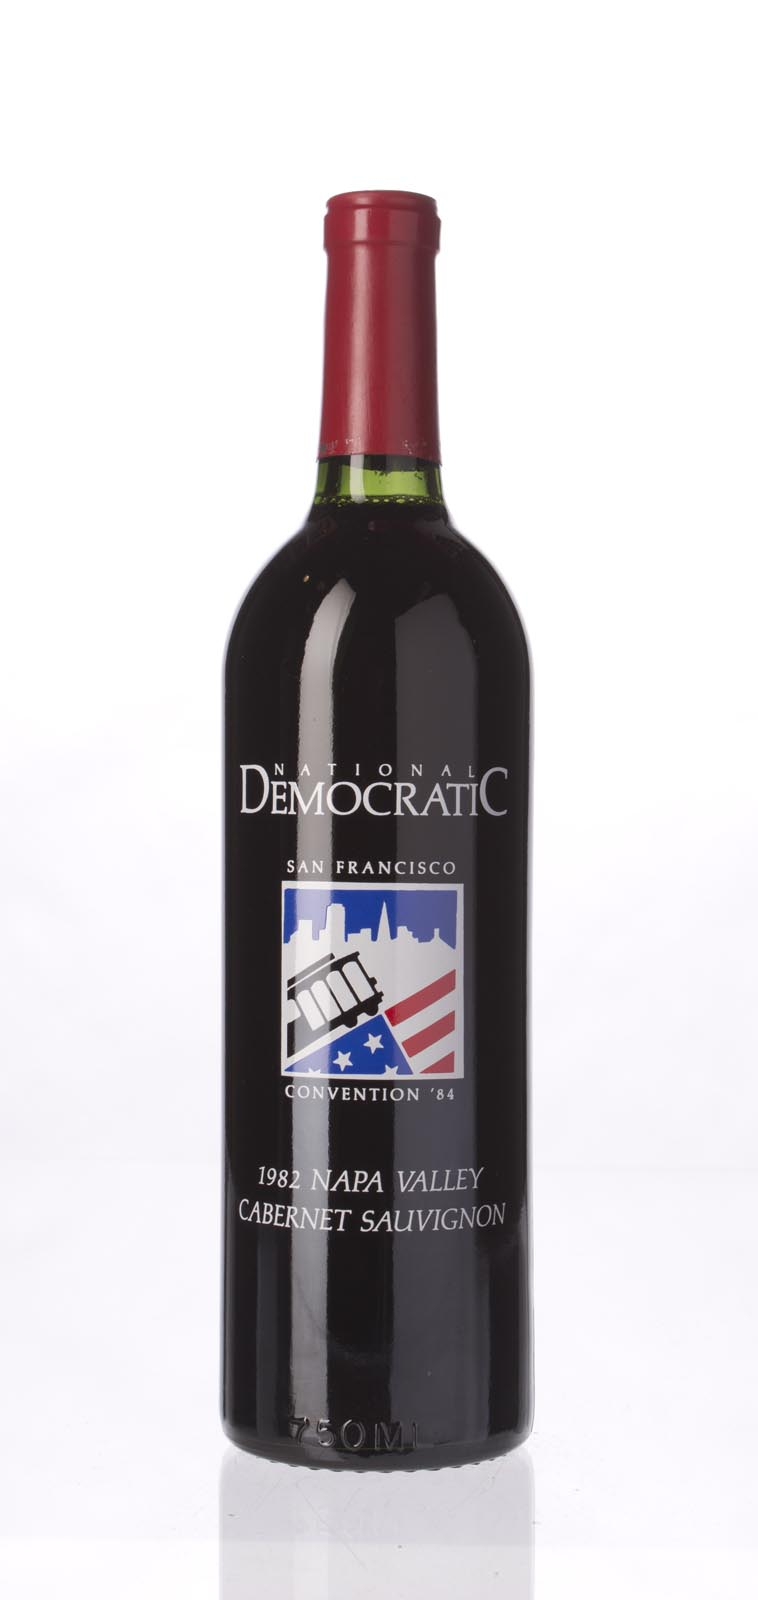 Vineyard Wine Cellars Cabernet Sauvignon National Democratic Convention 1984 1982,  () from The BPW - Merchants of rare and fine wines.